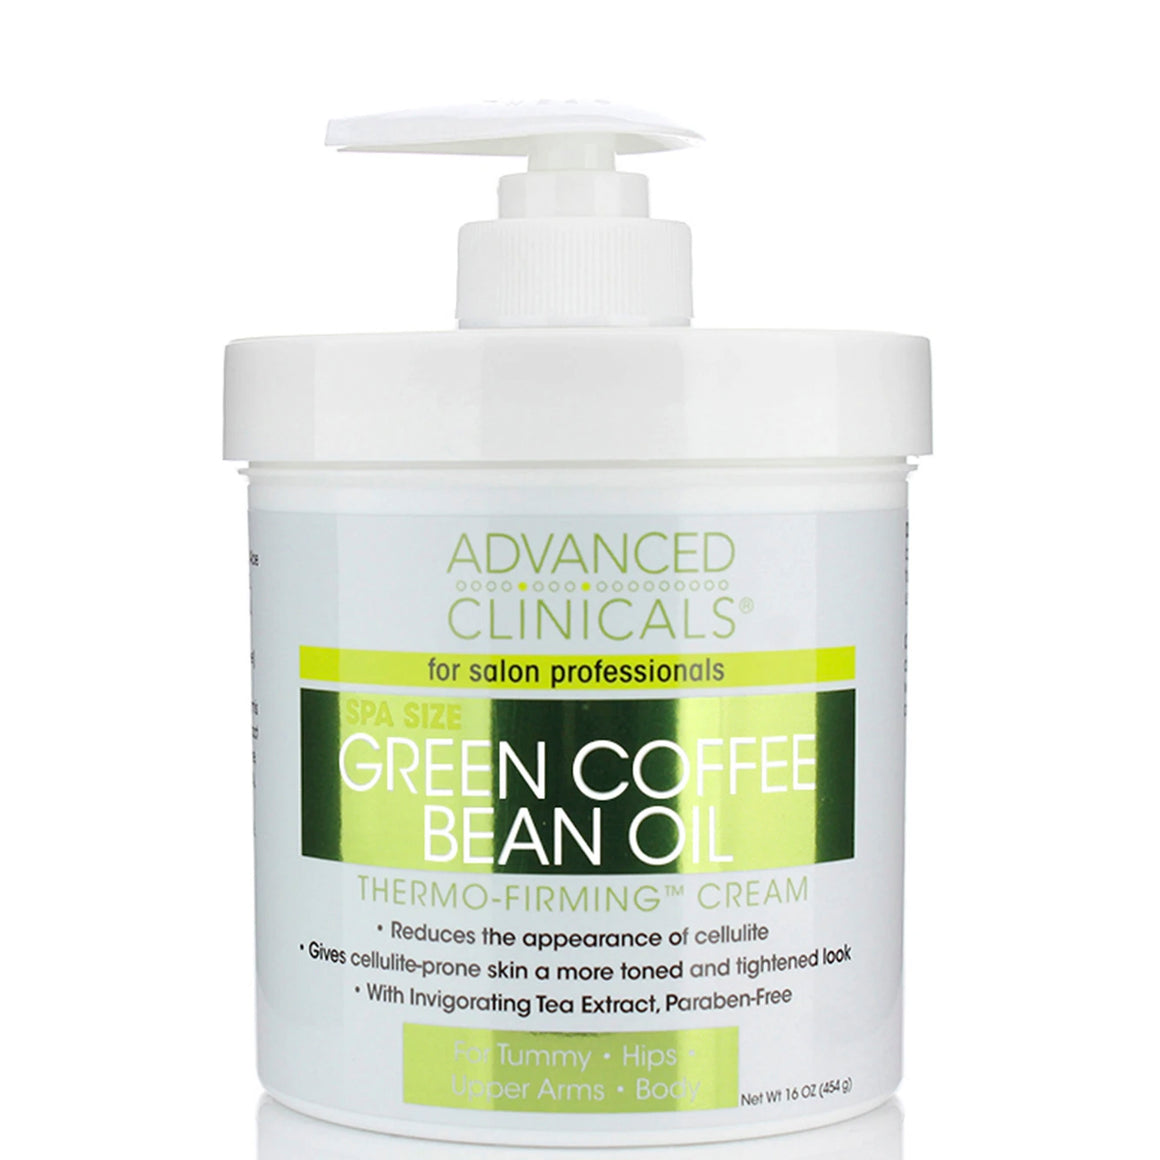 16oz green coffee bean oil, thermo-firming cream, reduces appearance of cellulite, paraben free, full body